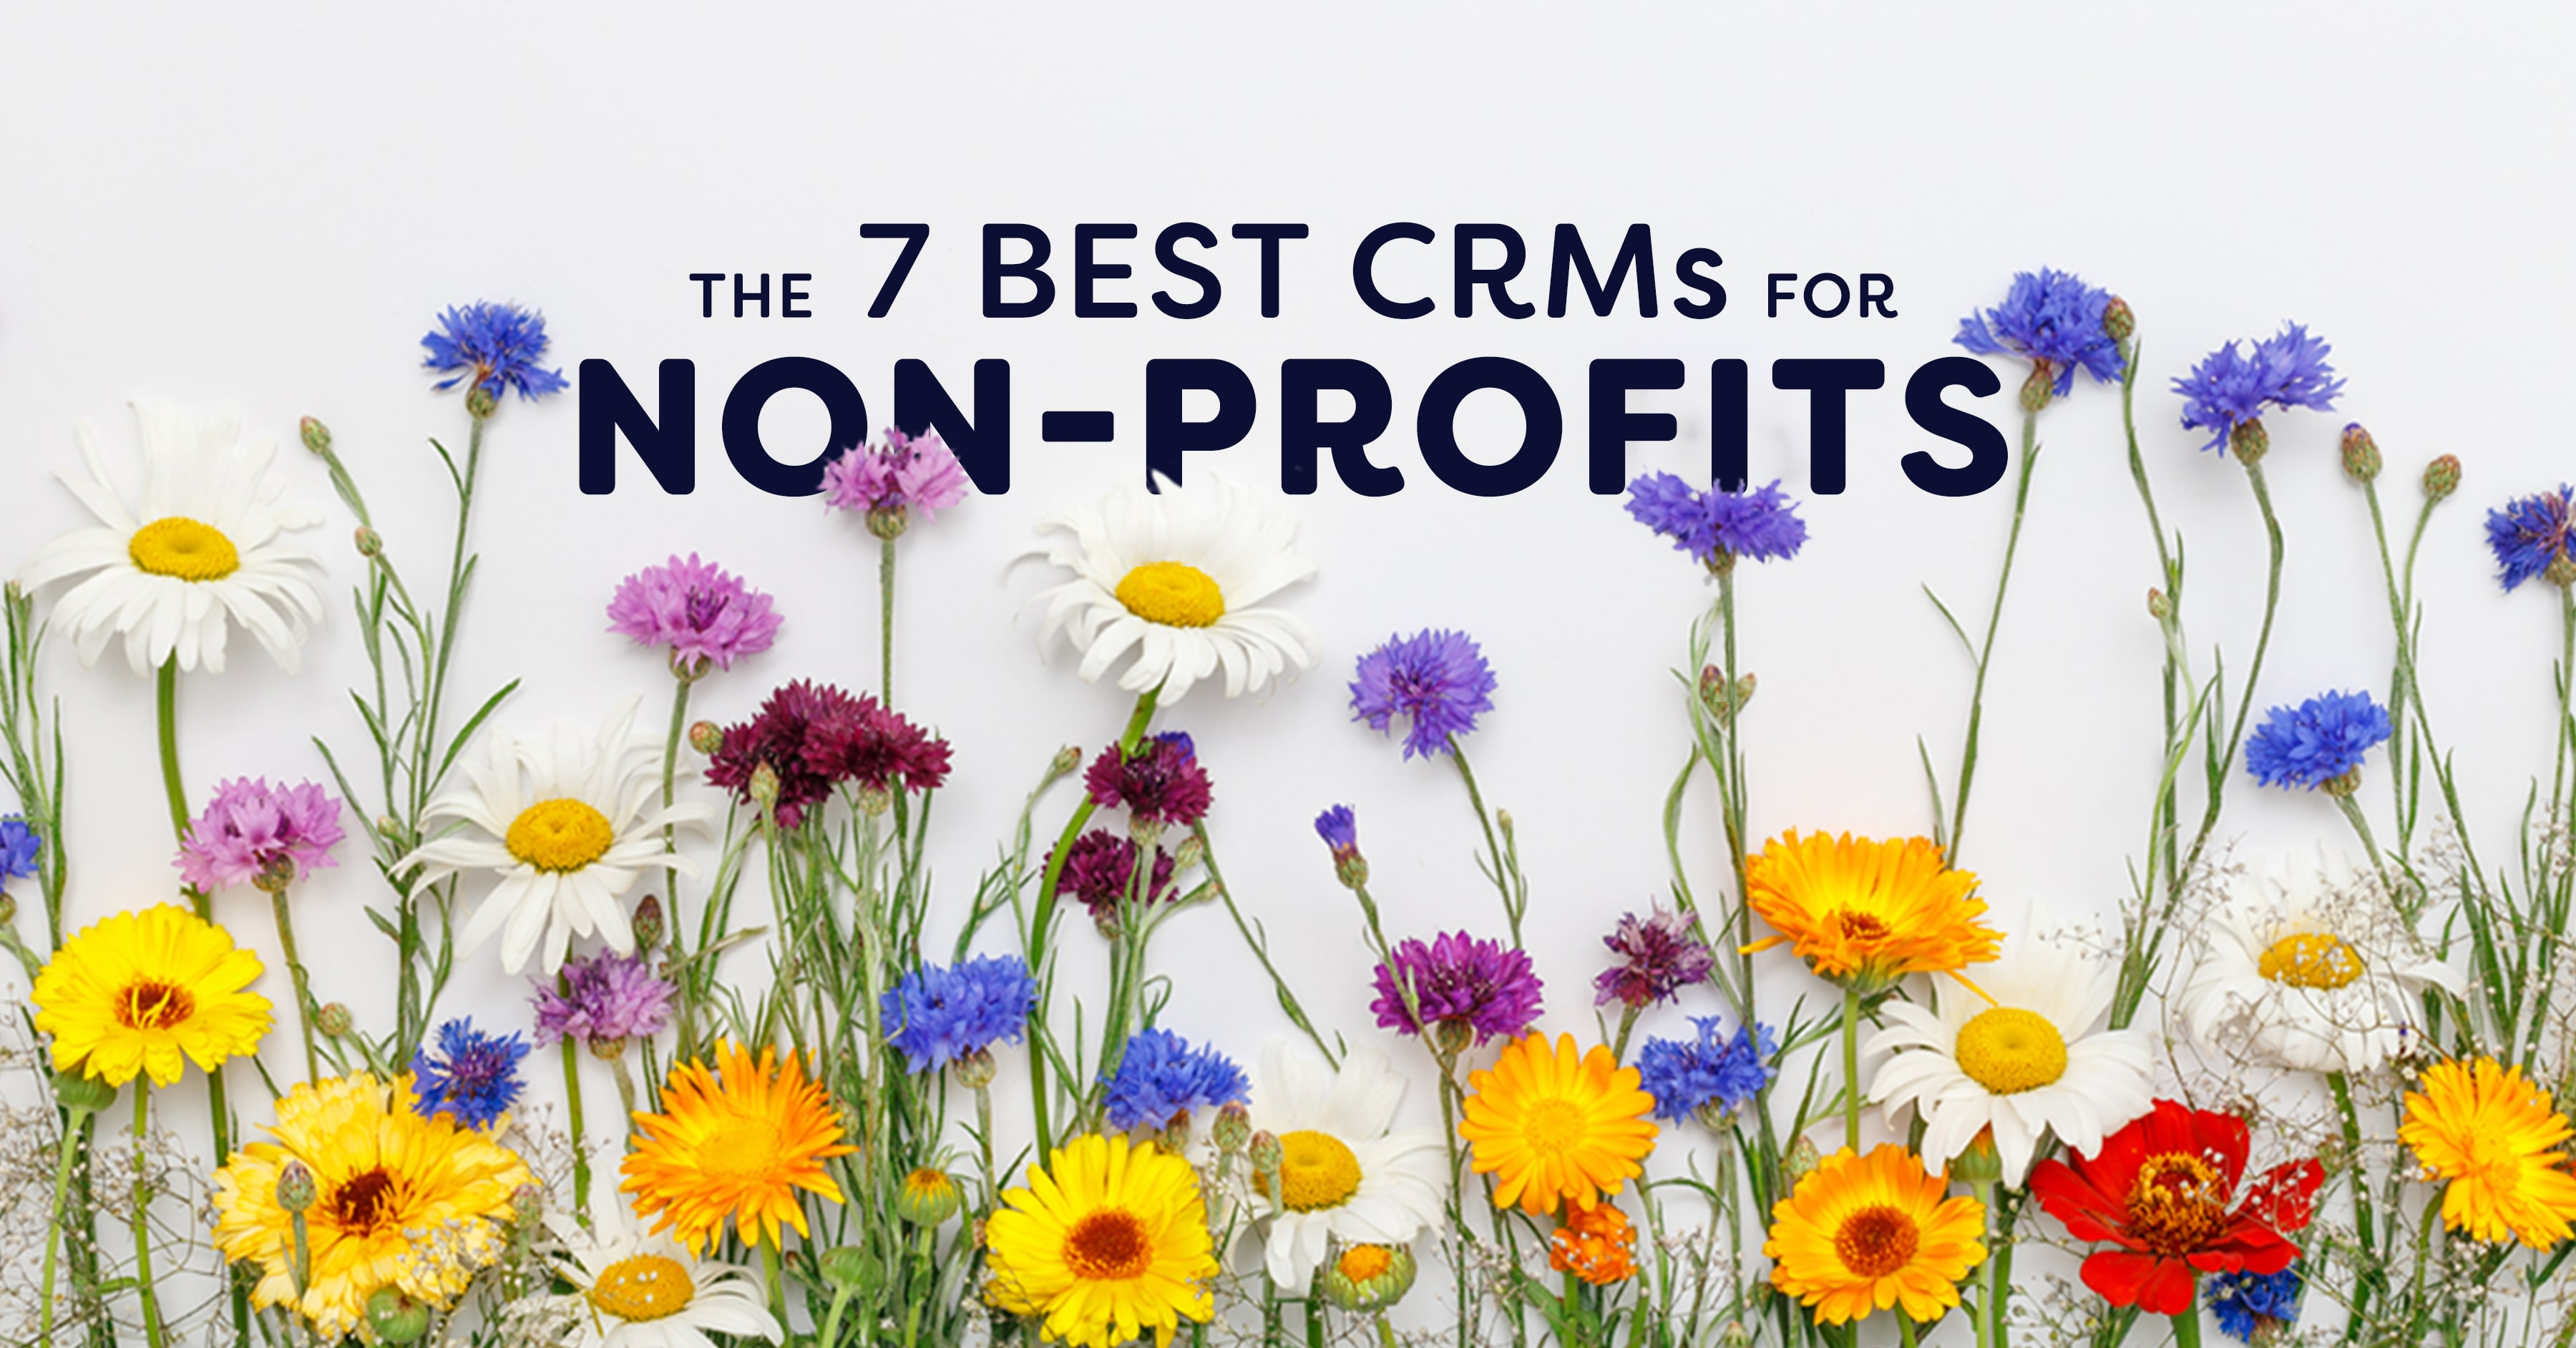 Comparing the 7 Best CRMs for Non-Profits | Nutshell